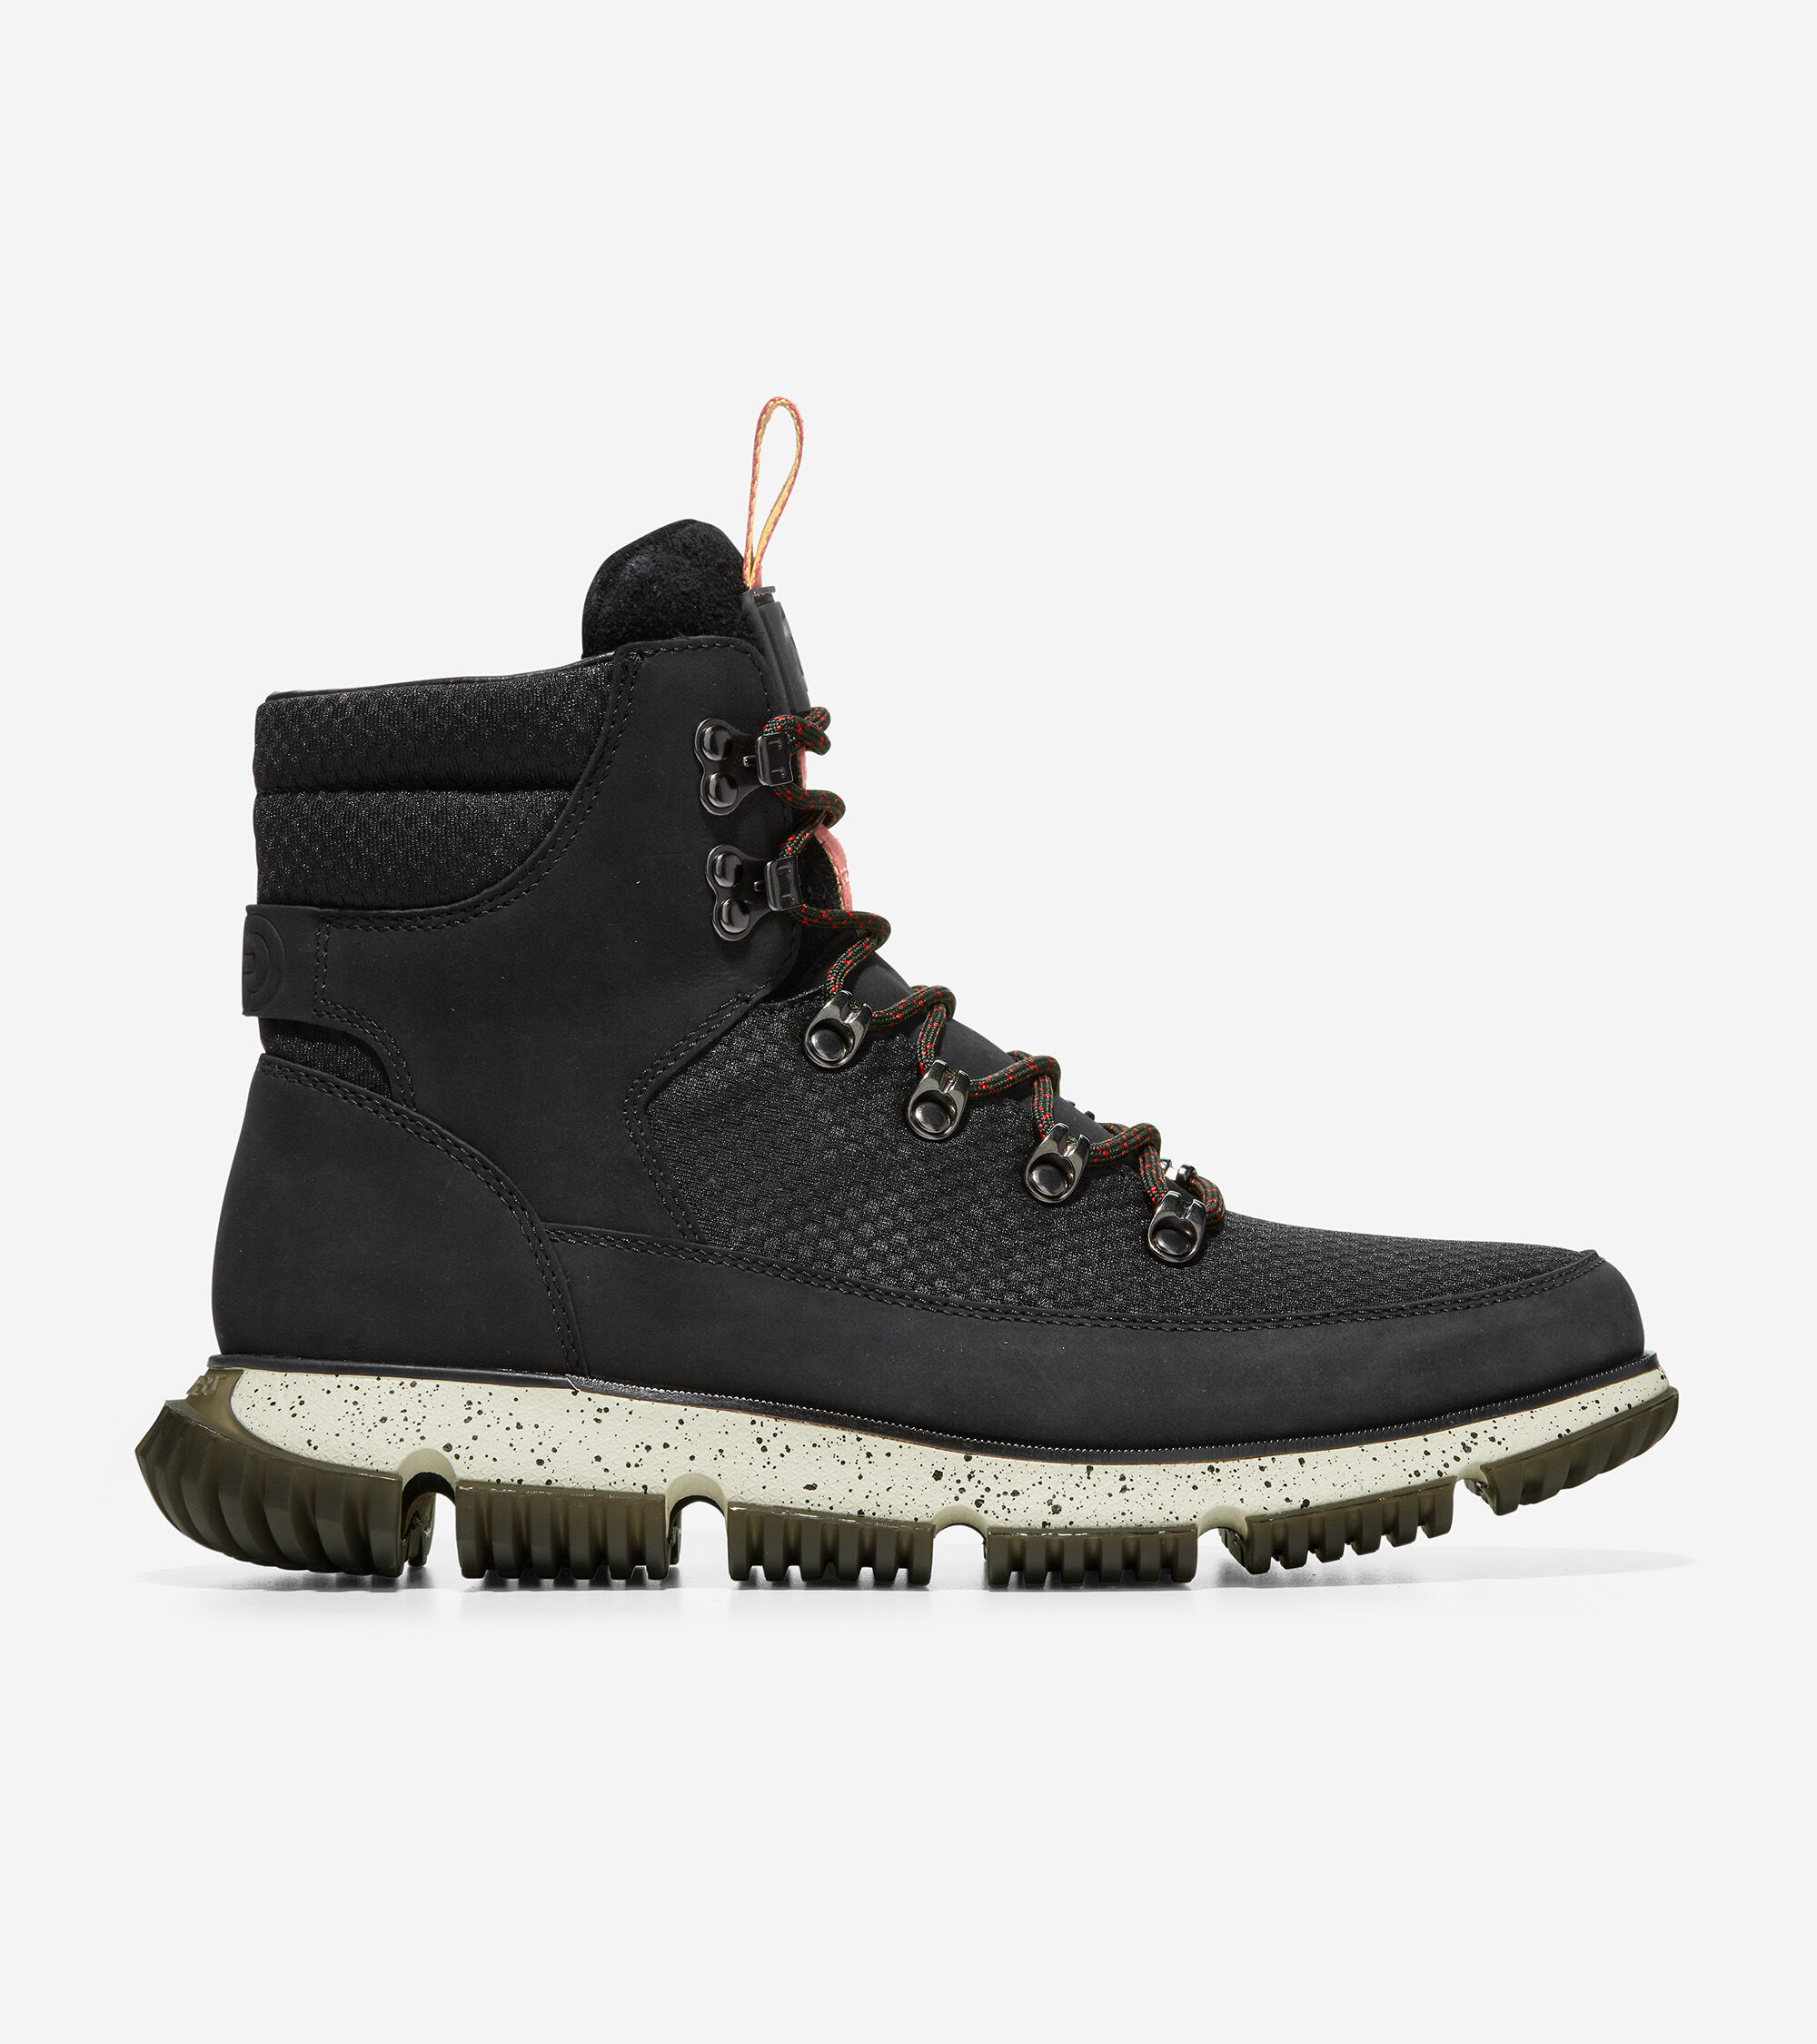 Weather-Ready: We wrapped waterproof leather and suede around an insulated lining to keep you dry and warm in wintry conditions. Responsive Cushioning: Our triple-density foam system gives this boot an athletic-shoe feel. Steady Traction: A redesigned full-length tread pattern provides durable grip in all conditions.